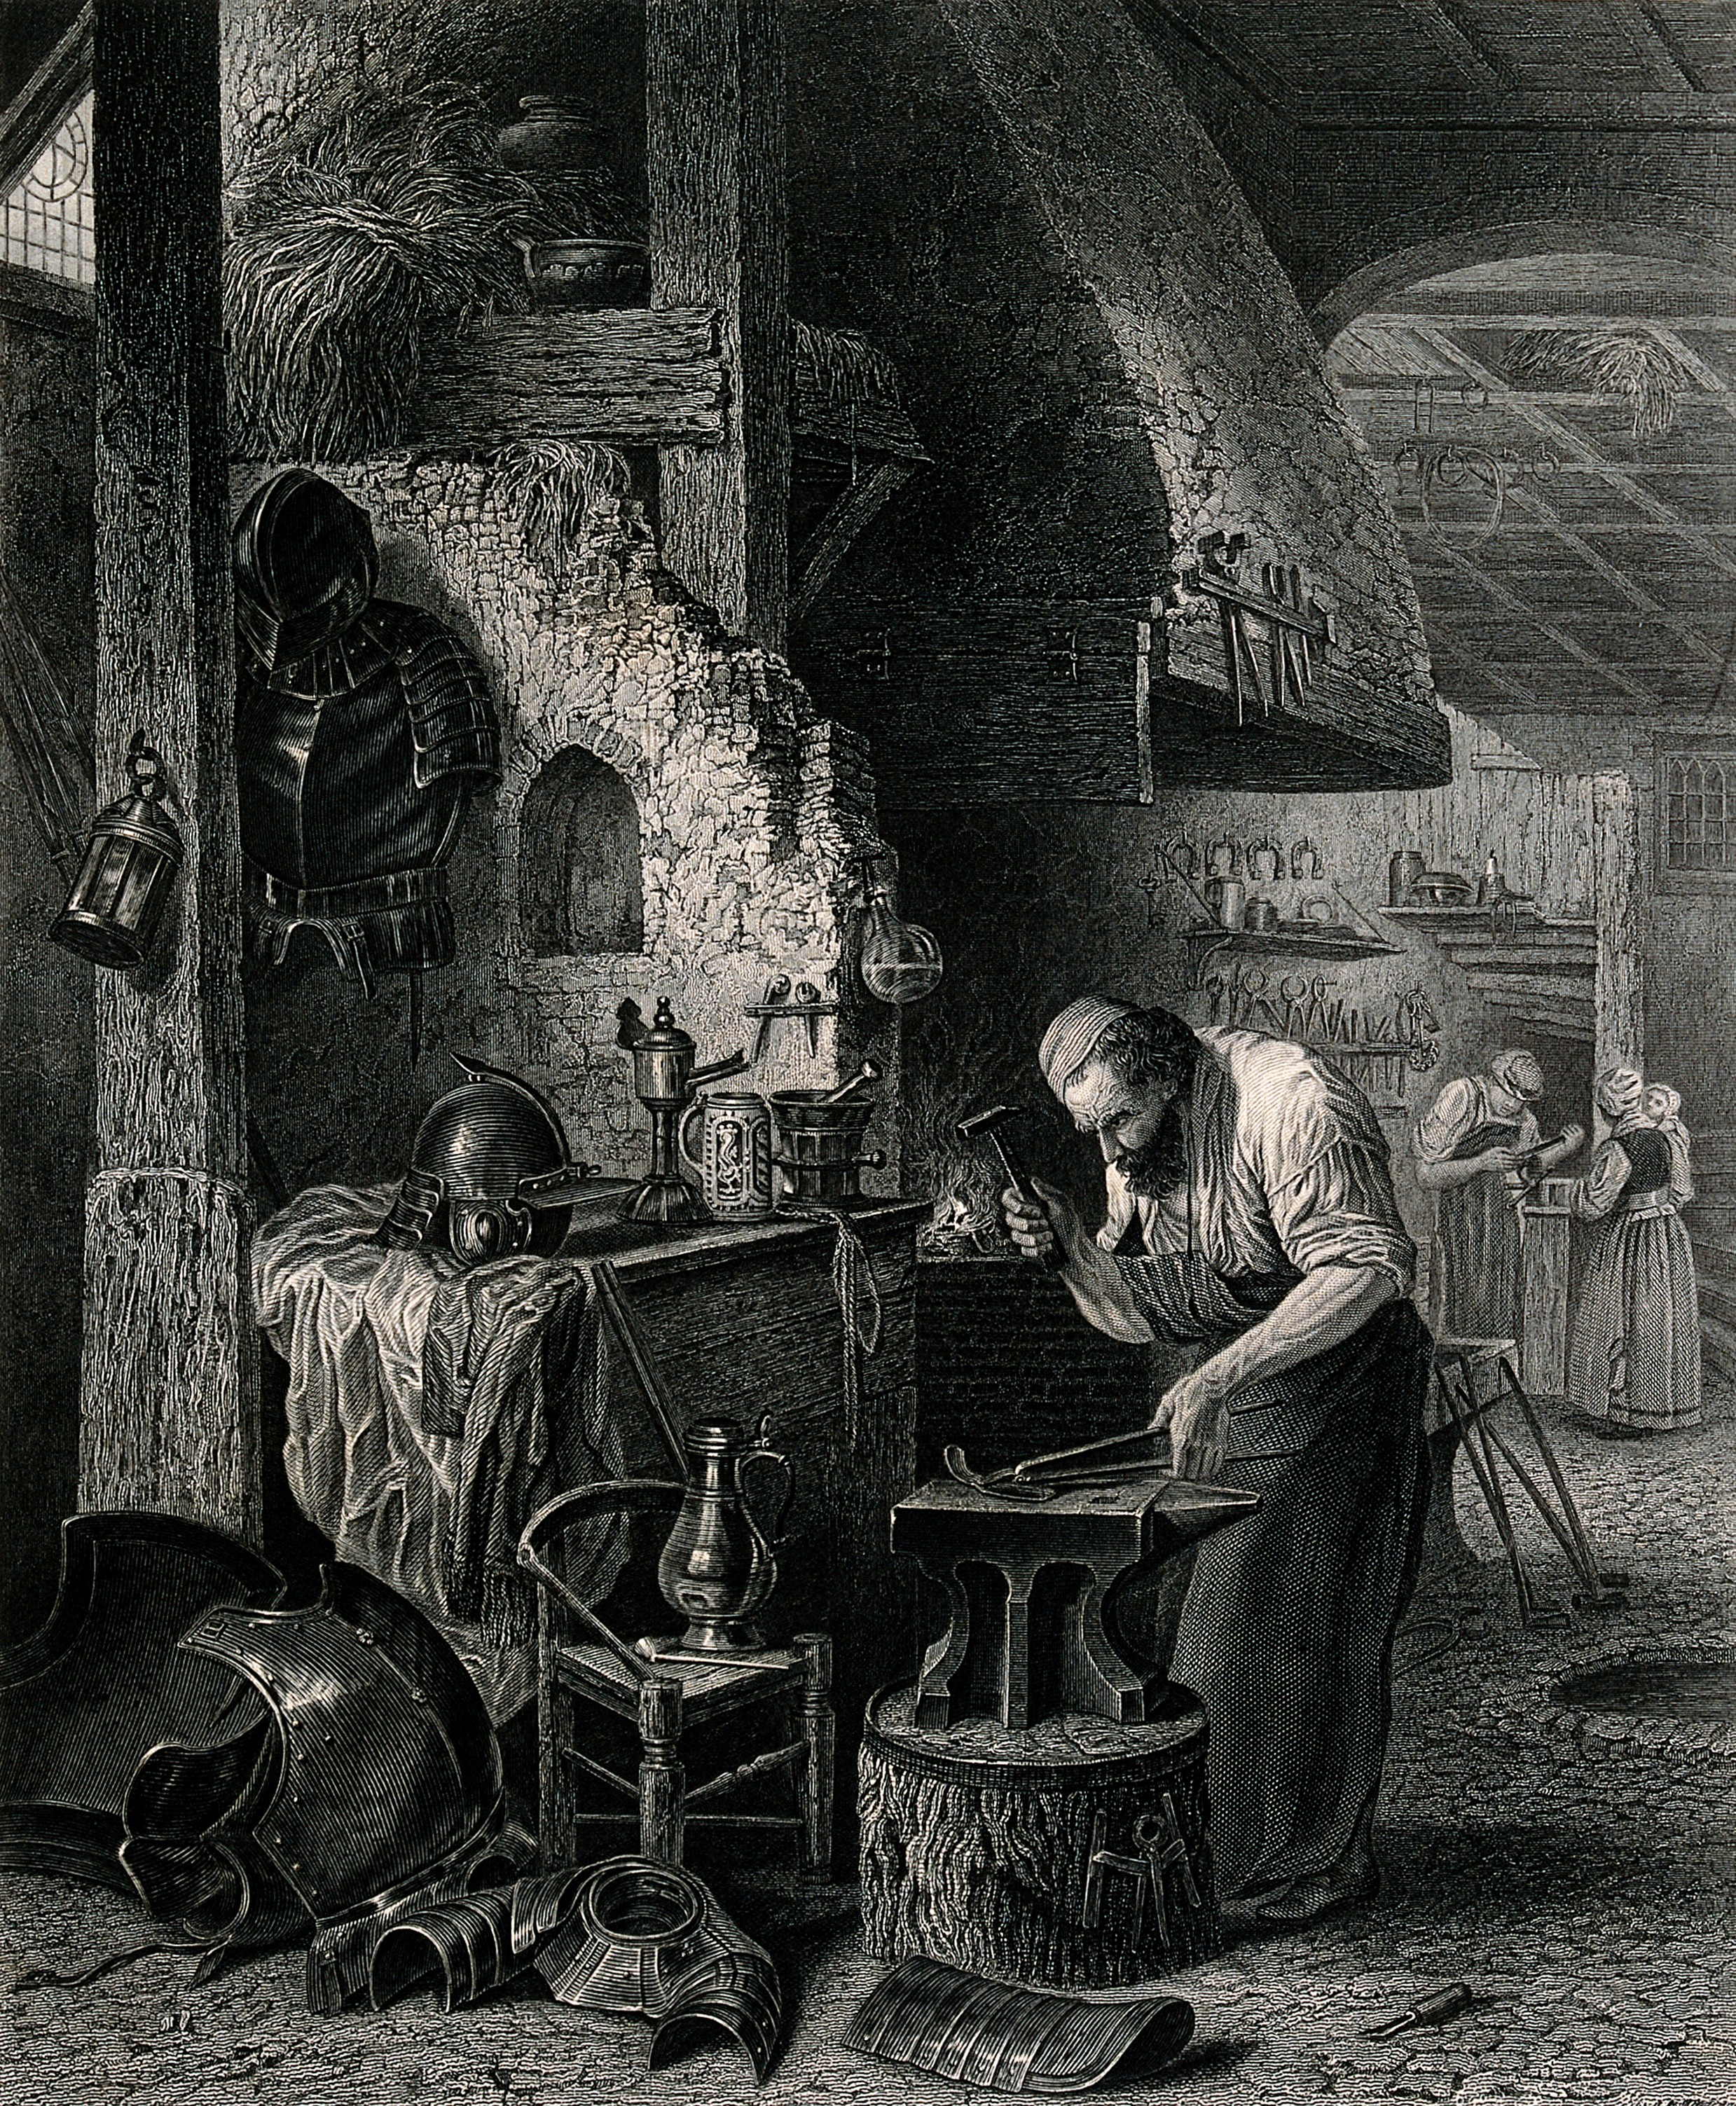 An engraving of a blacksmith hammering at a piece of metal on his anvil as he makes suits of armour. Engraving by J. Godfrey after H. Leys. / CC BY 4.0 [Wellcome]